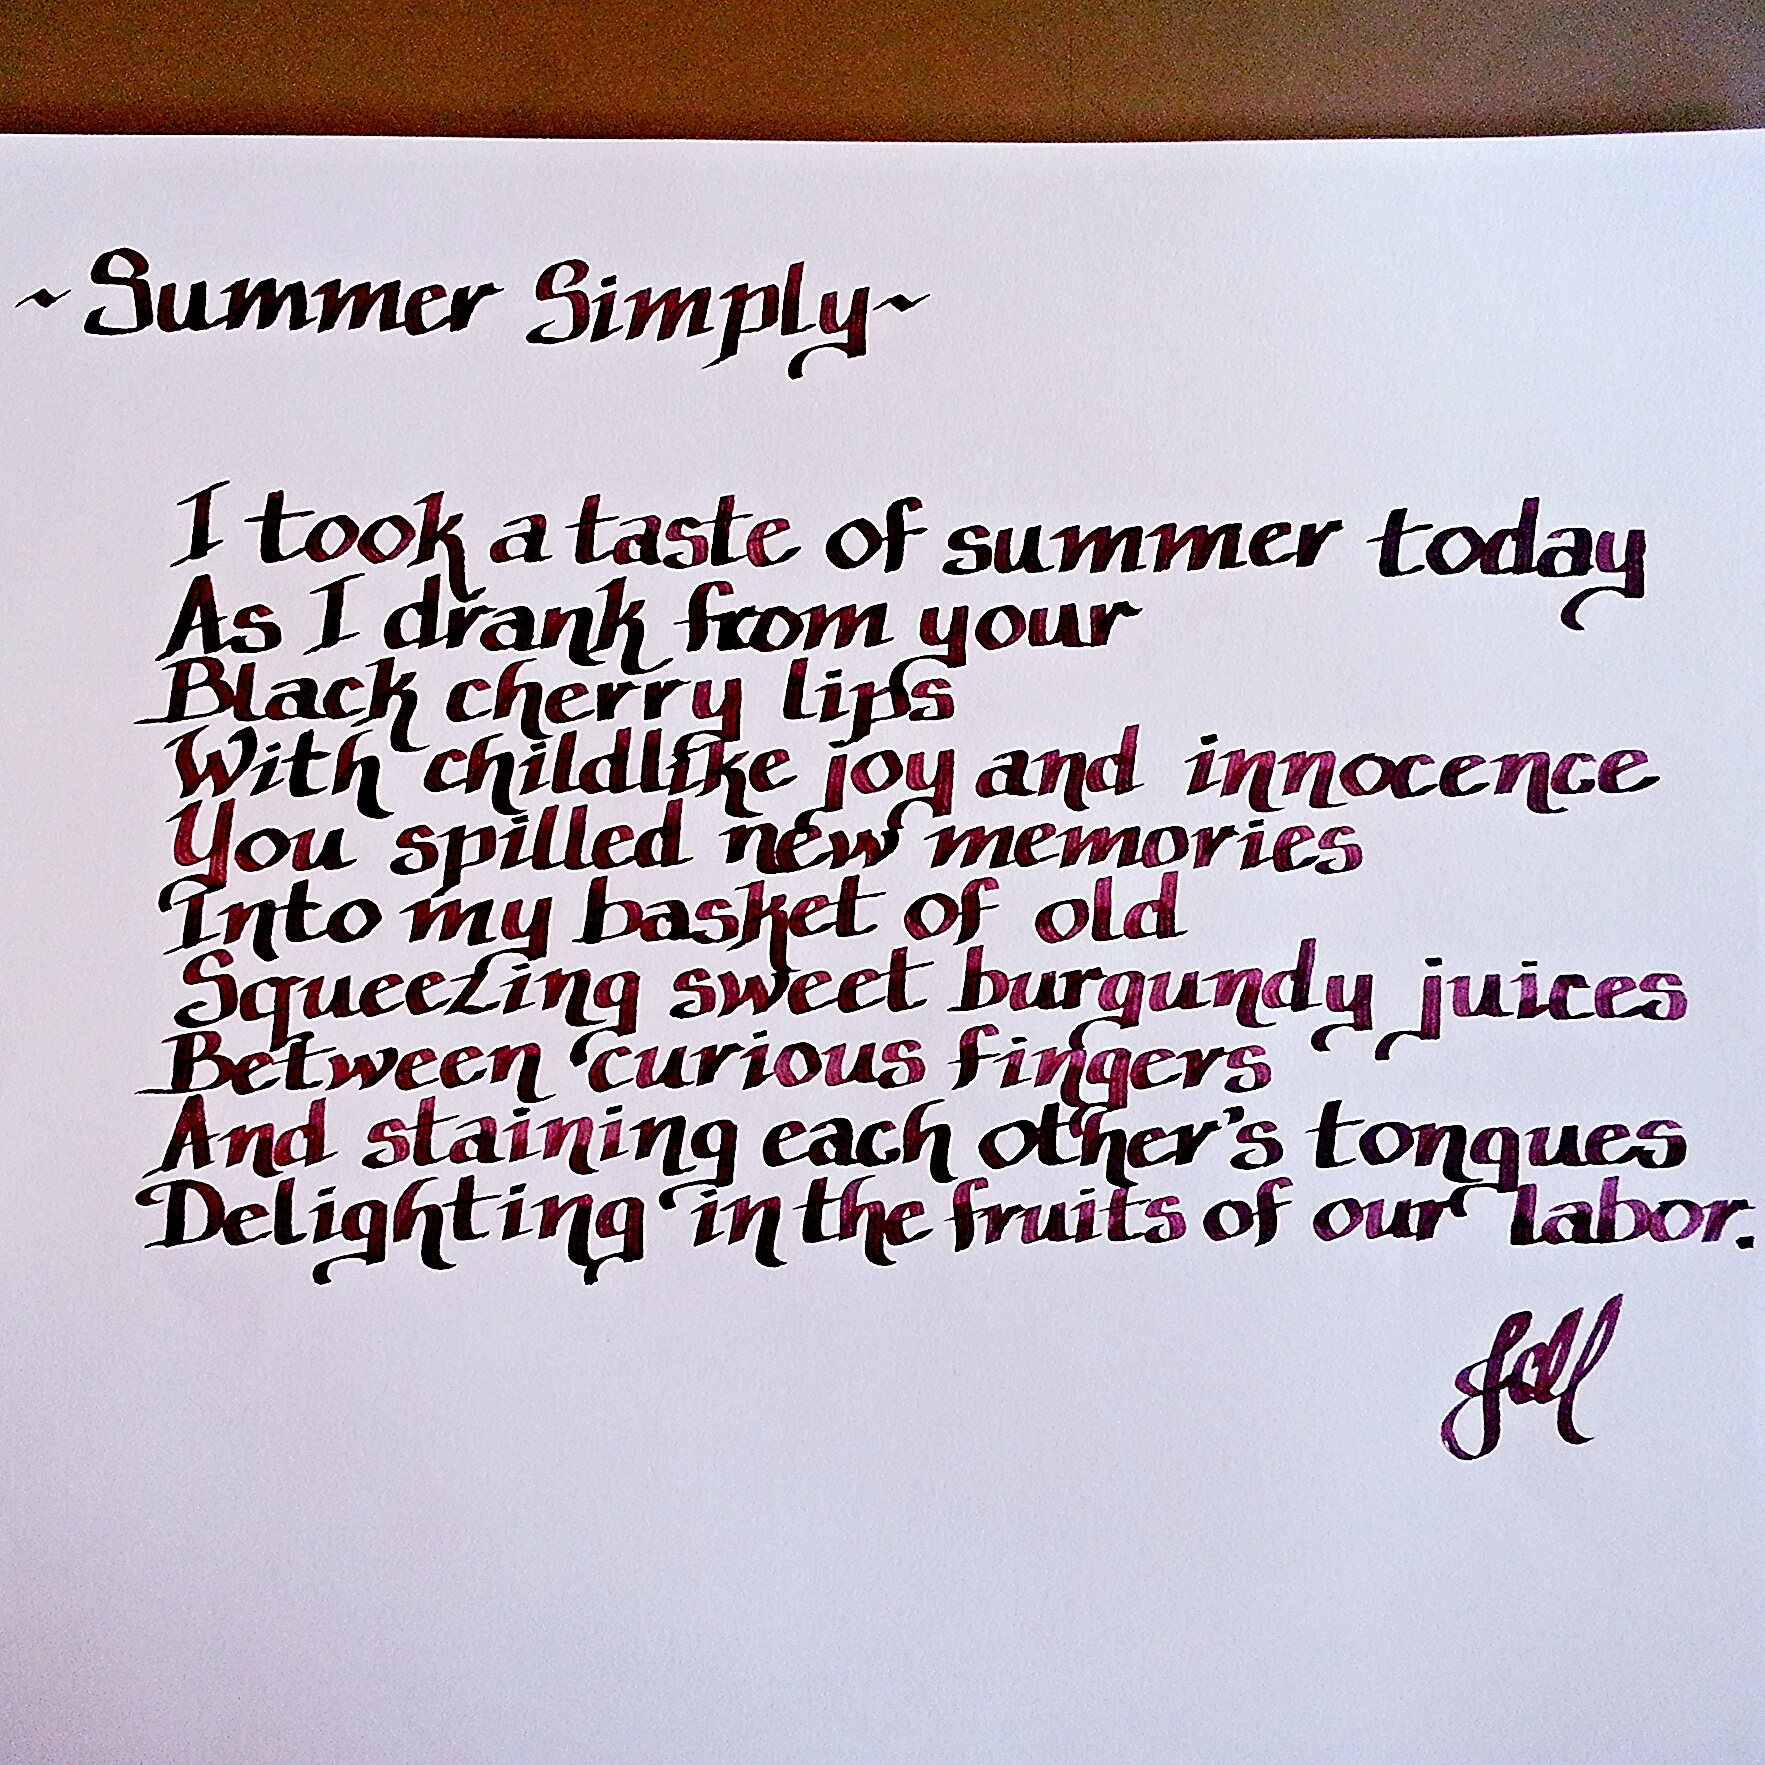 Summer Simply (a poem)